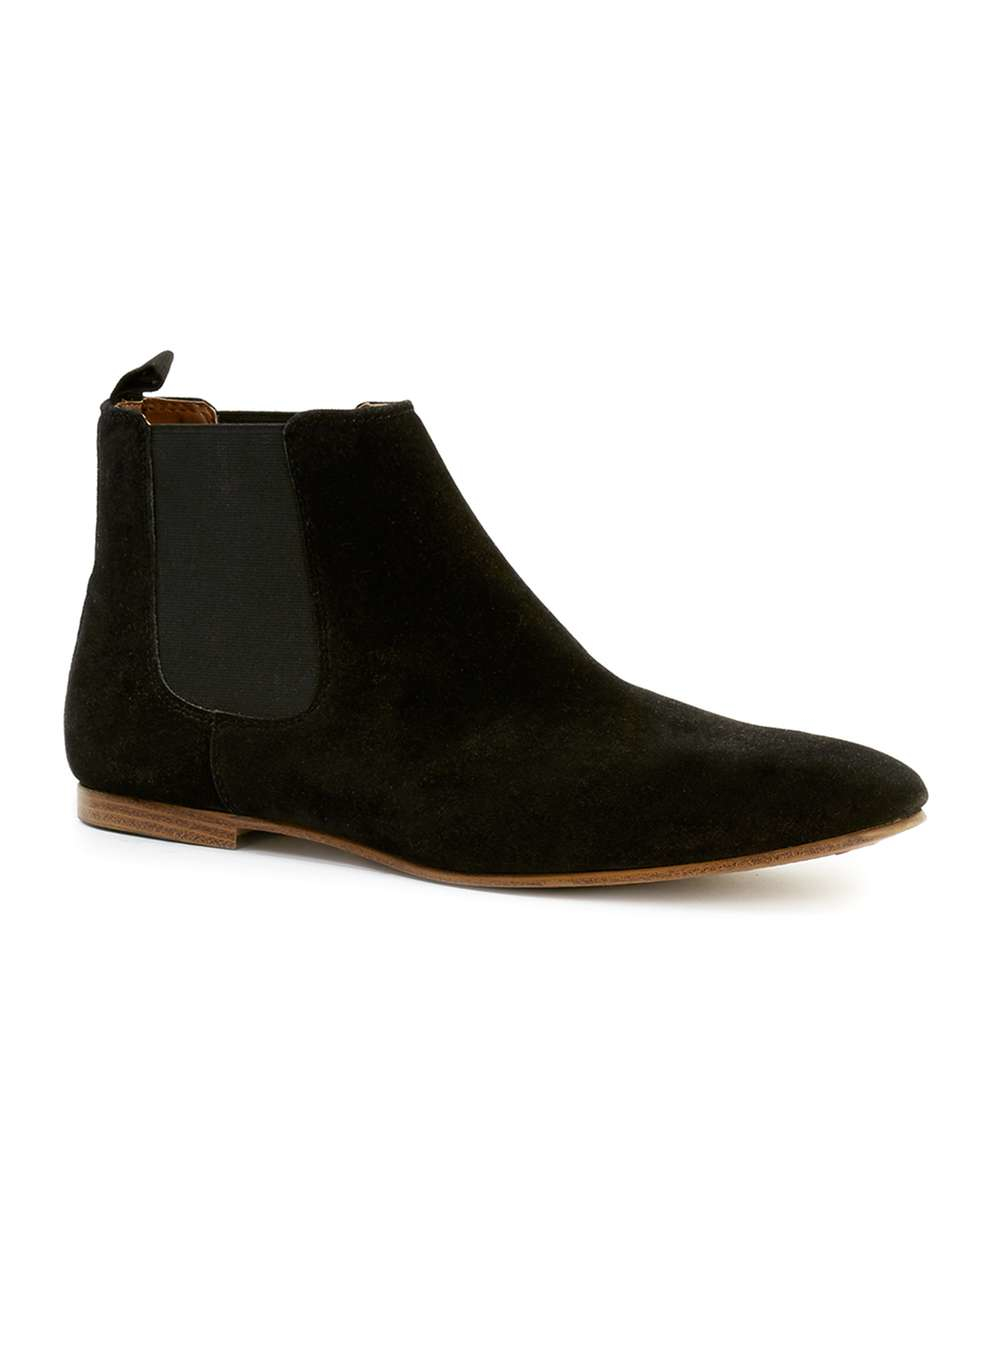 topman black faux suede chelsea boots in beige for men black lyst. Black Bedroom Furniture Sets. Home Design Ideas